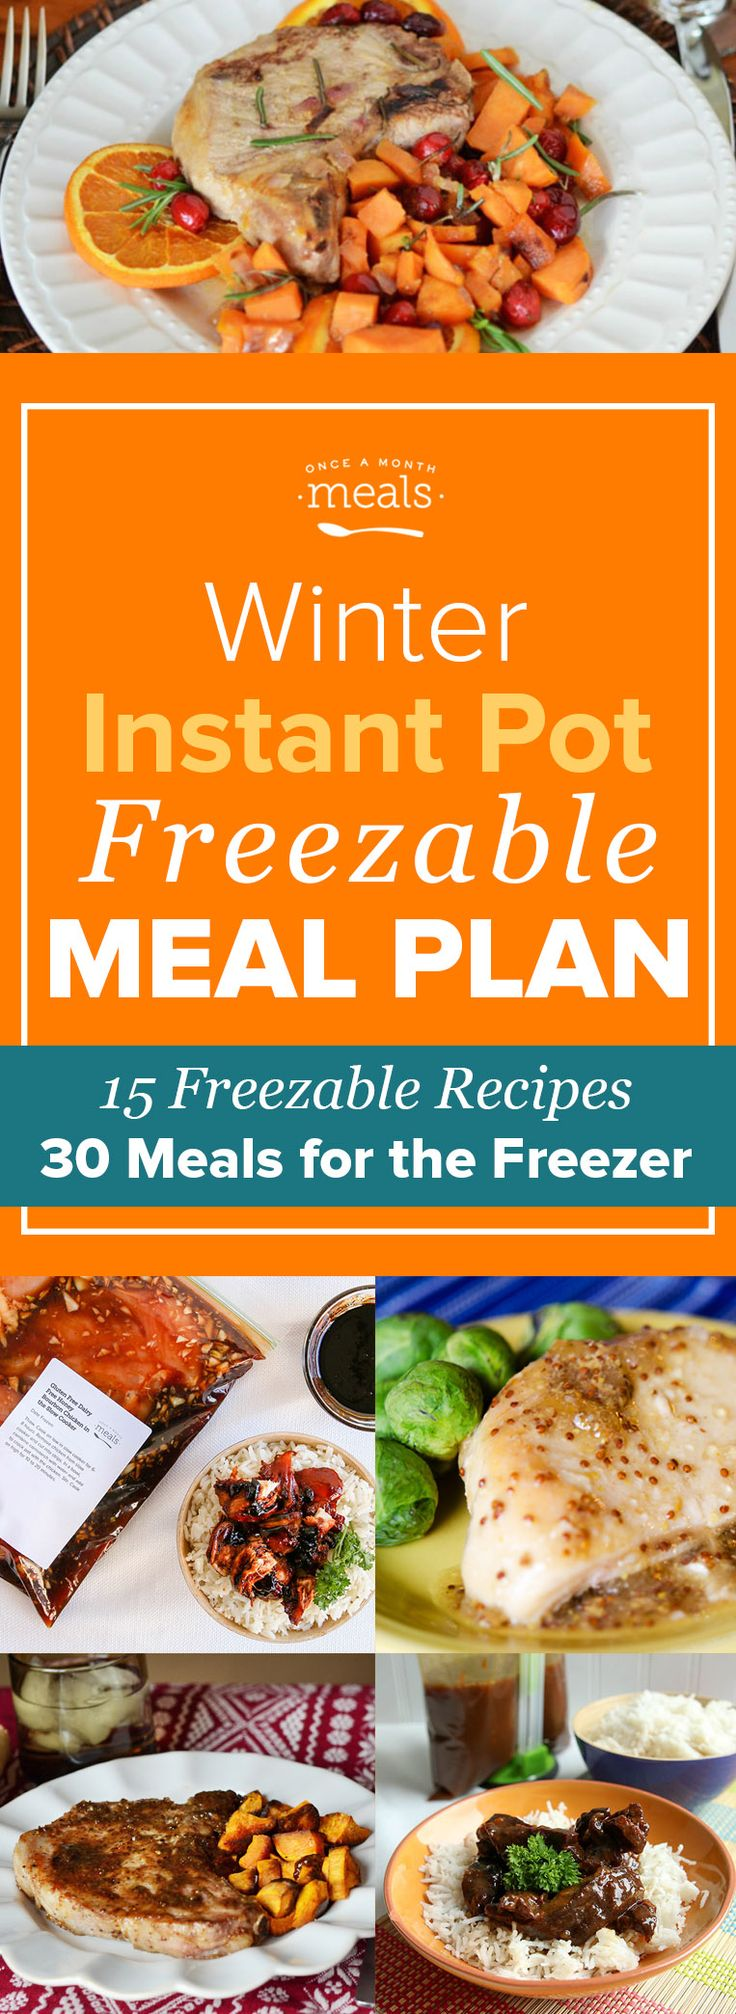 Make the most out of every minute you're cooking in the kitchen this season. From fall apart Instant Pot Tender Braised Short Ribs to bacon topped Instant Pot Jalapeno Popper Chicken Chili you can't go wrong with this freezer meal plan for 30 deliciously easy wintery meals, all made with your Instant Pot! via @onceamonthmeals